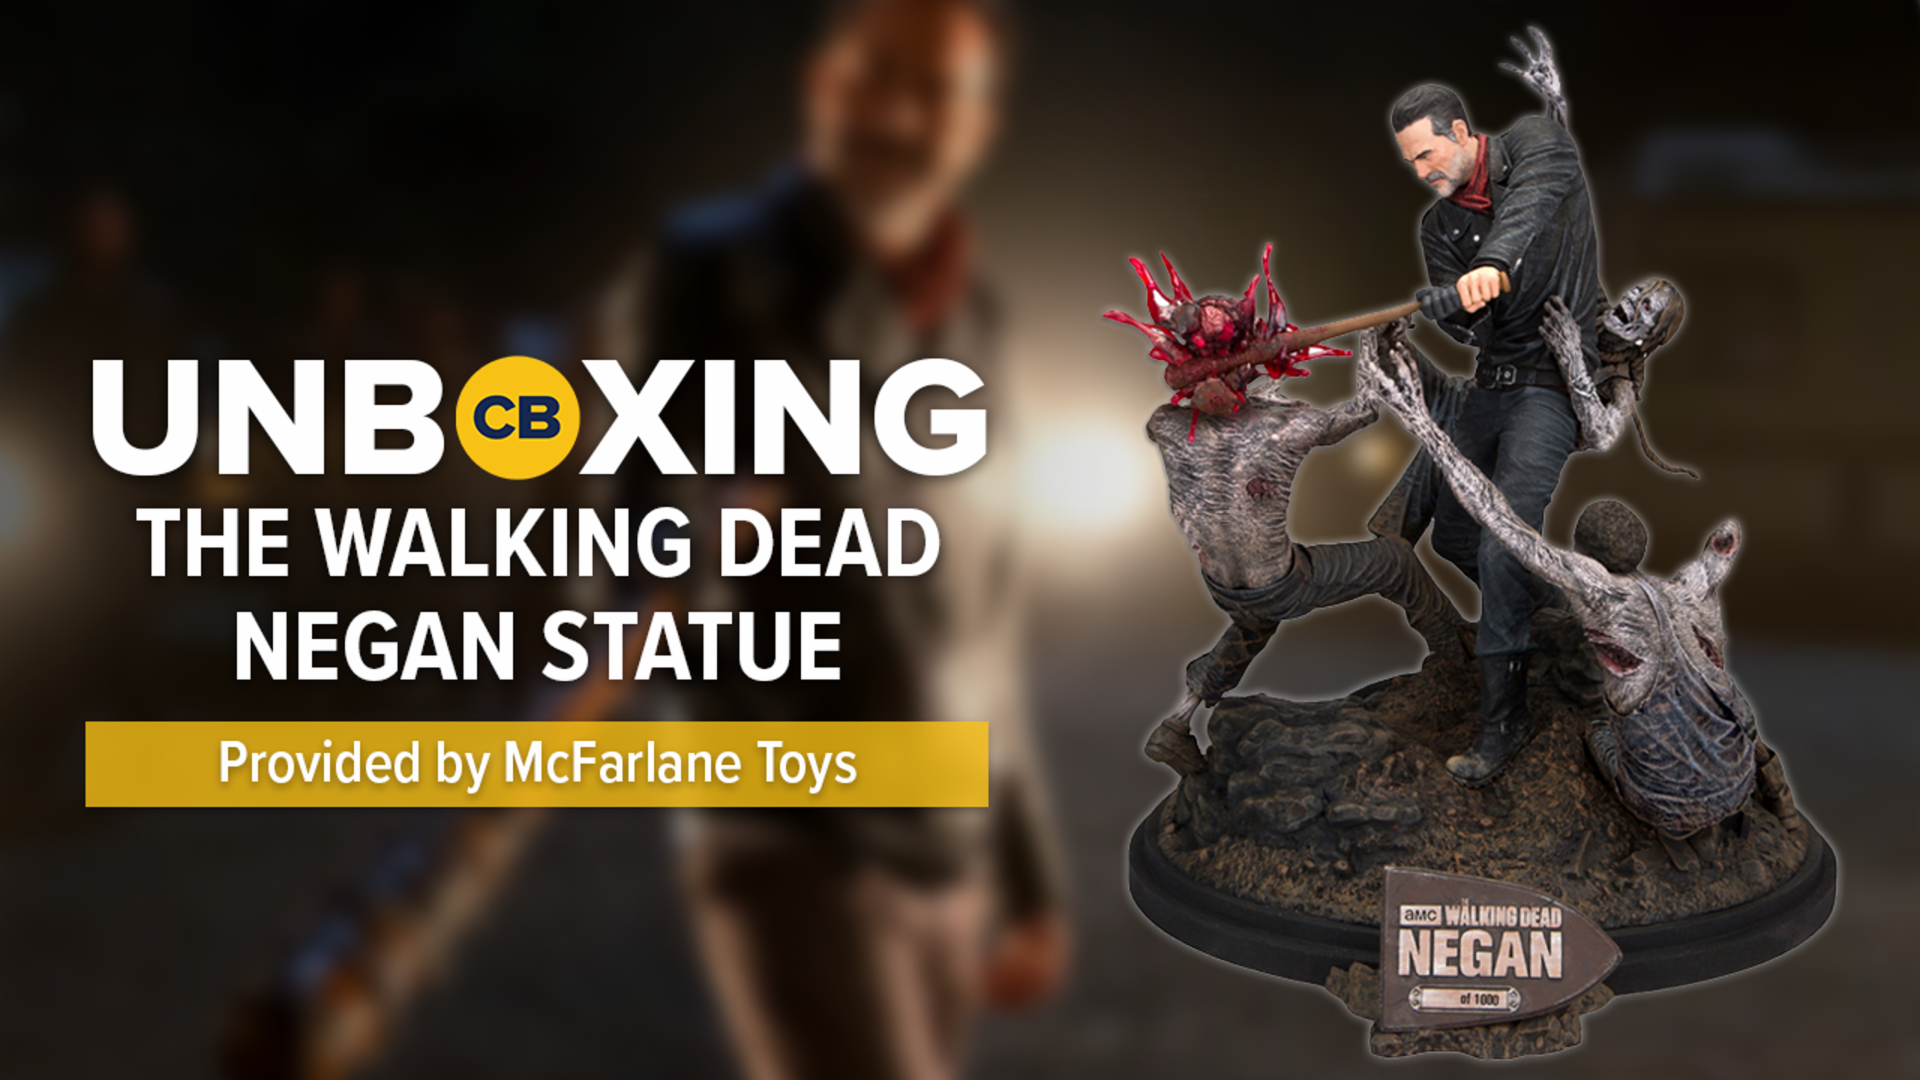 'The Walking Dead' Negan Resin Statue UNBOXING screen capture